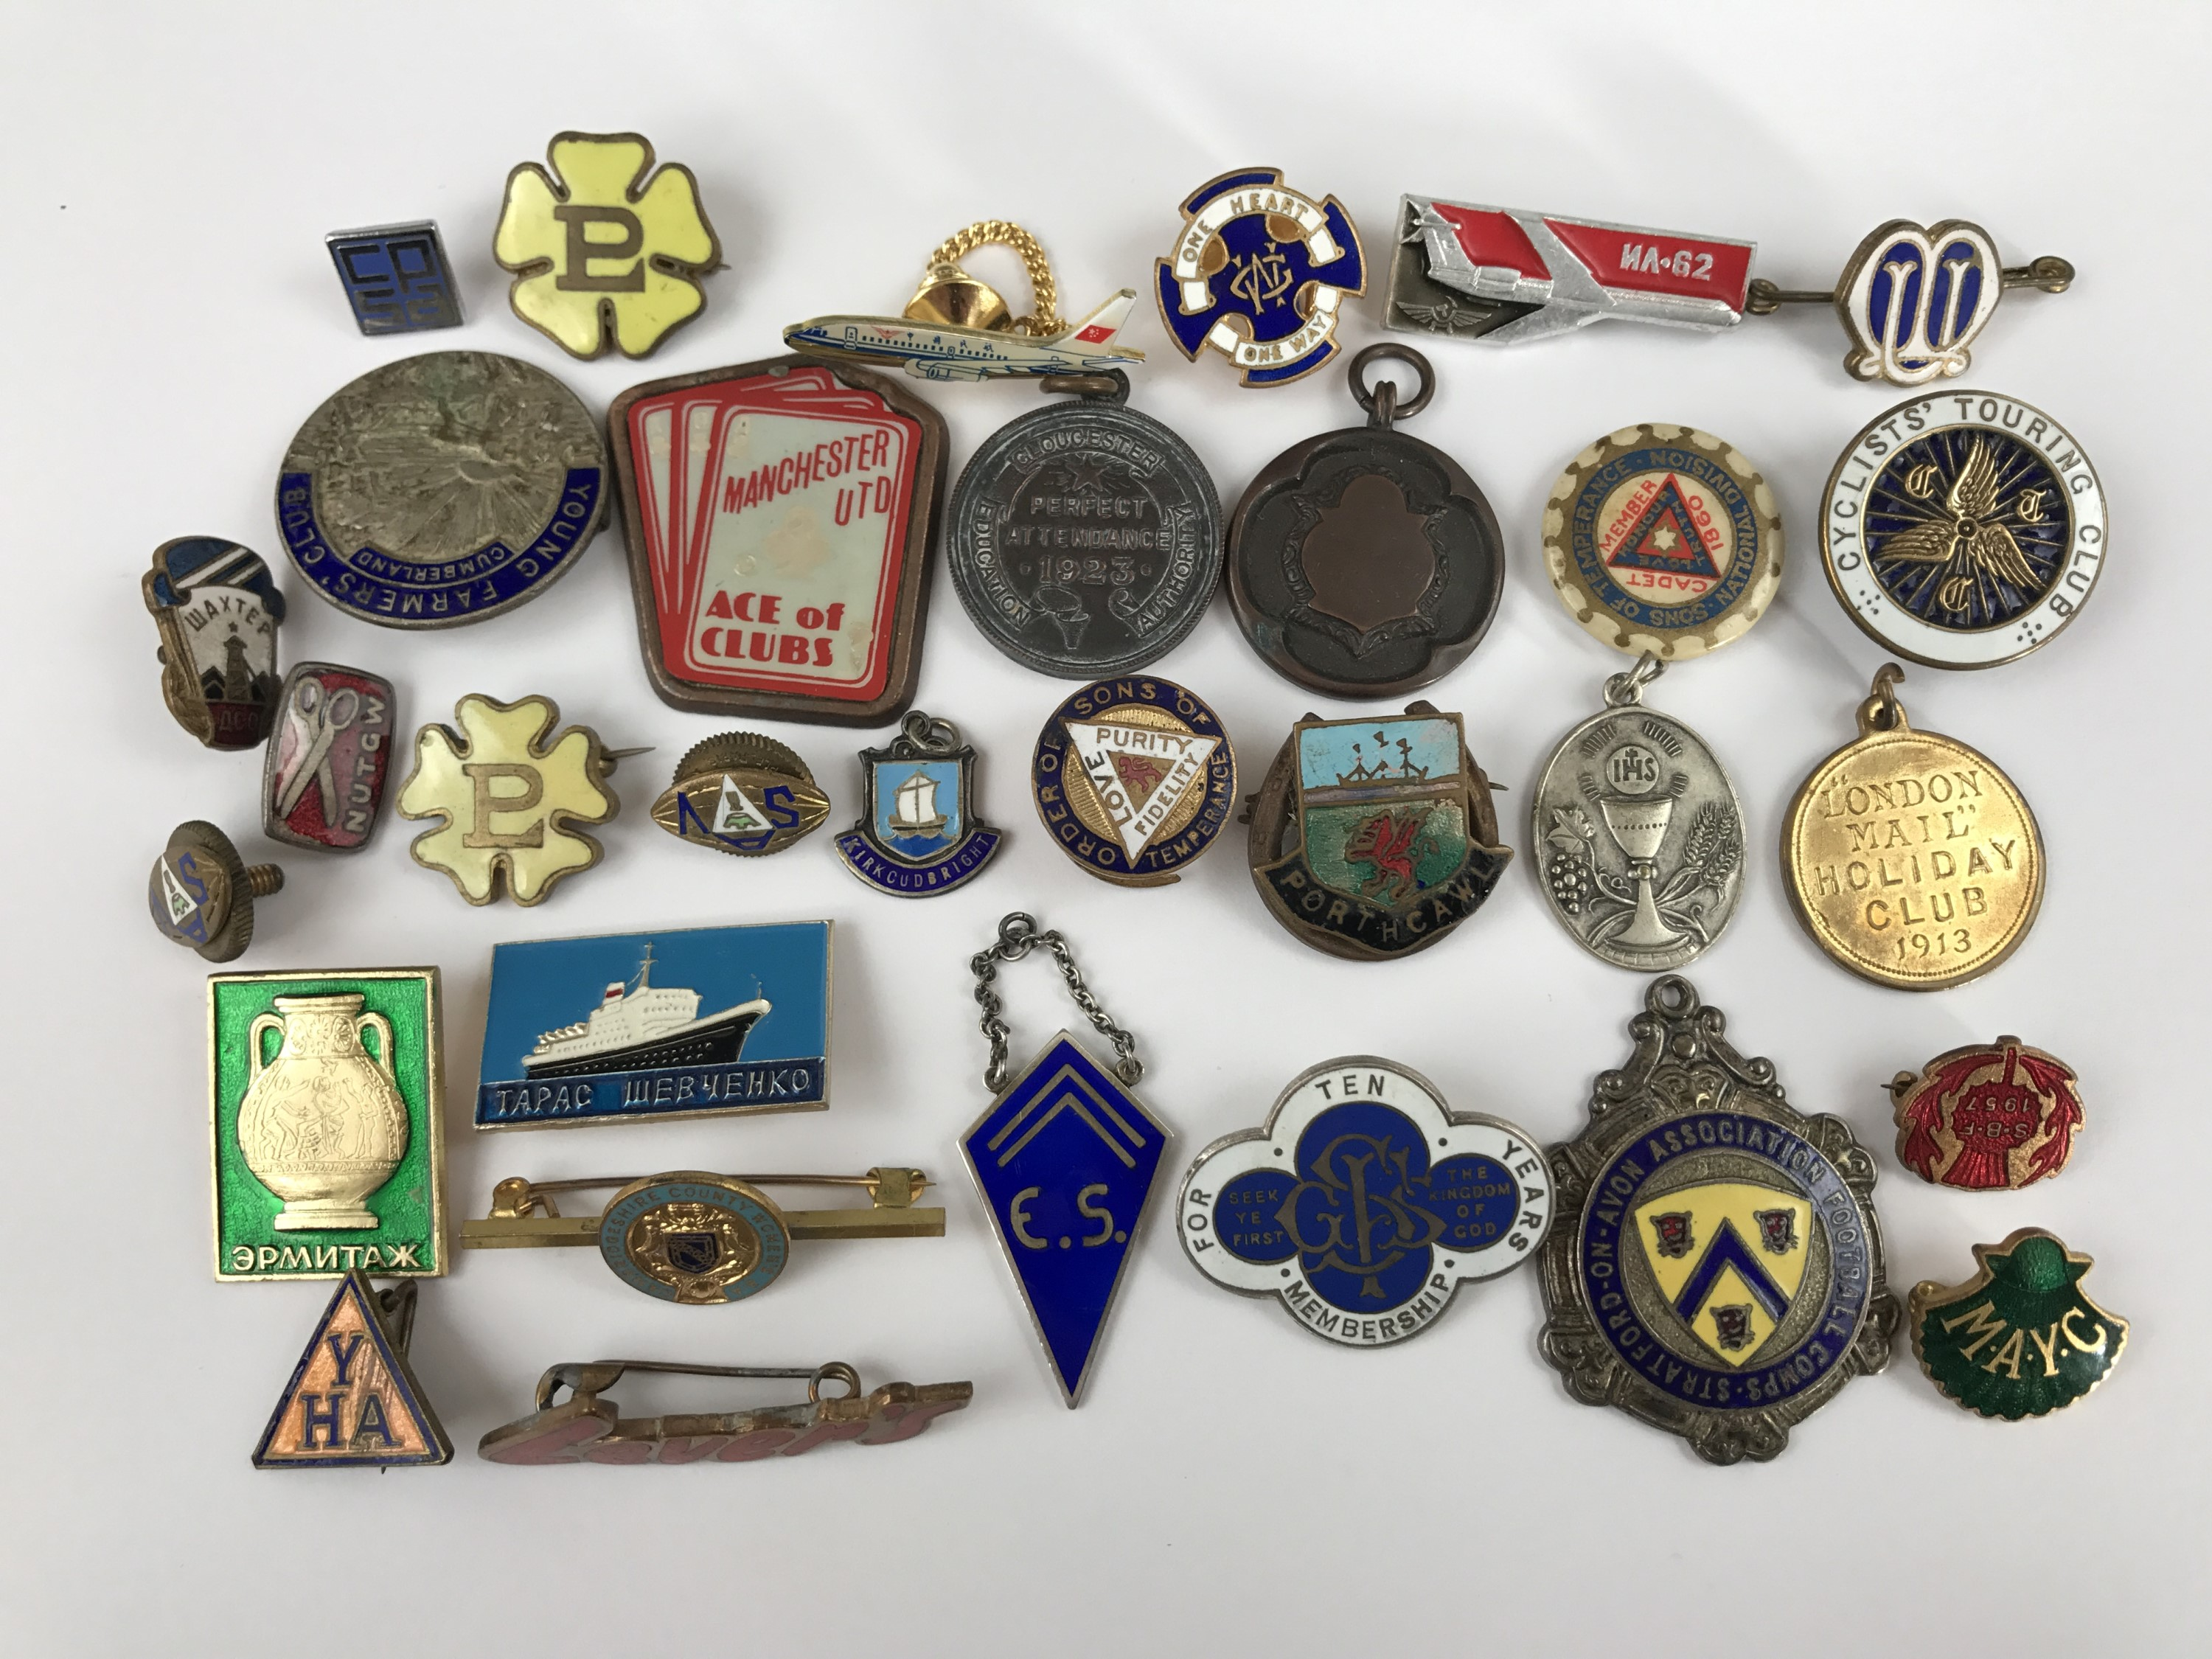 Lot 14 - Vintage enamelled and other club and association badges and medallions, including a 1913 London Mail